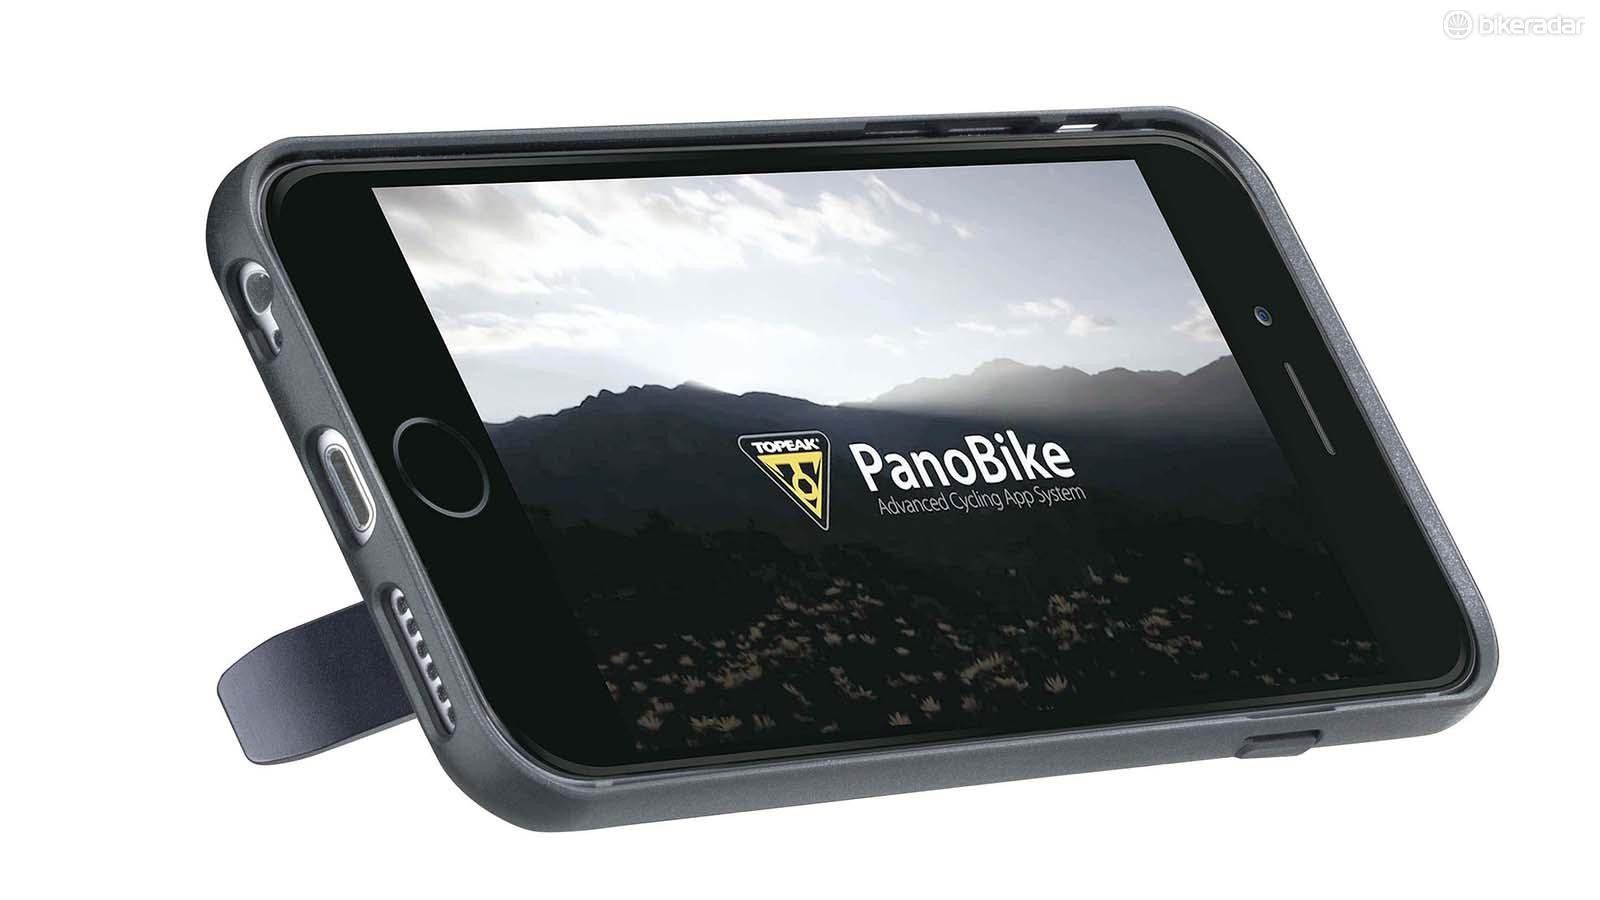 Topeak's RideCase is a plastic phone case with a rigid composite fibre base plate